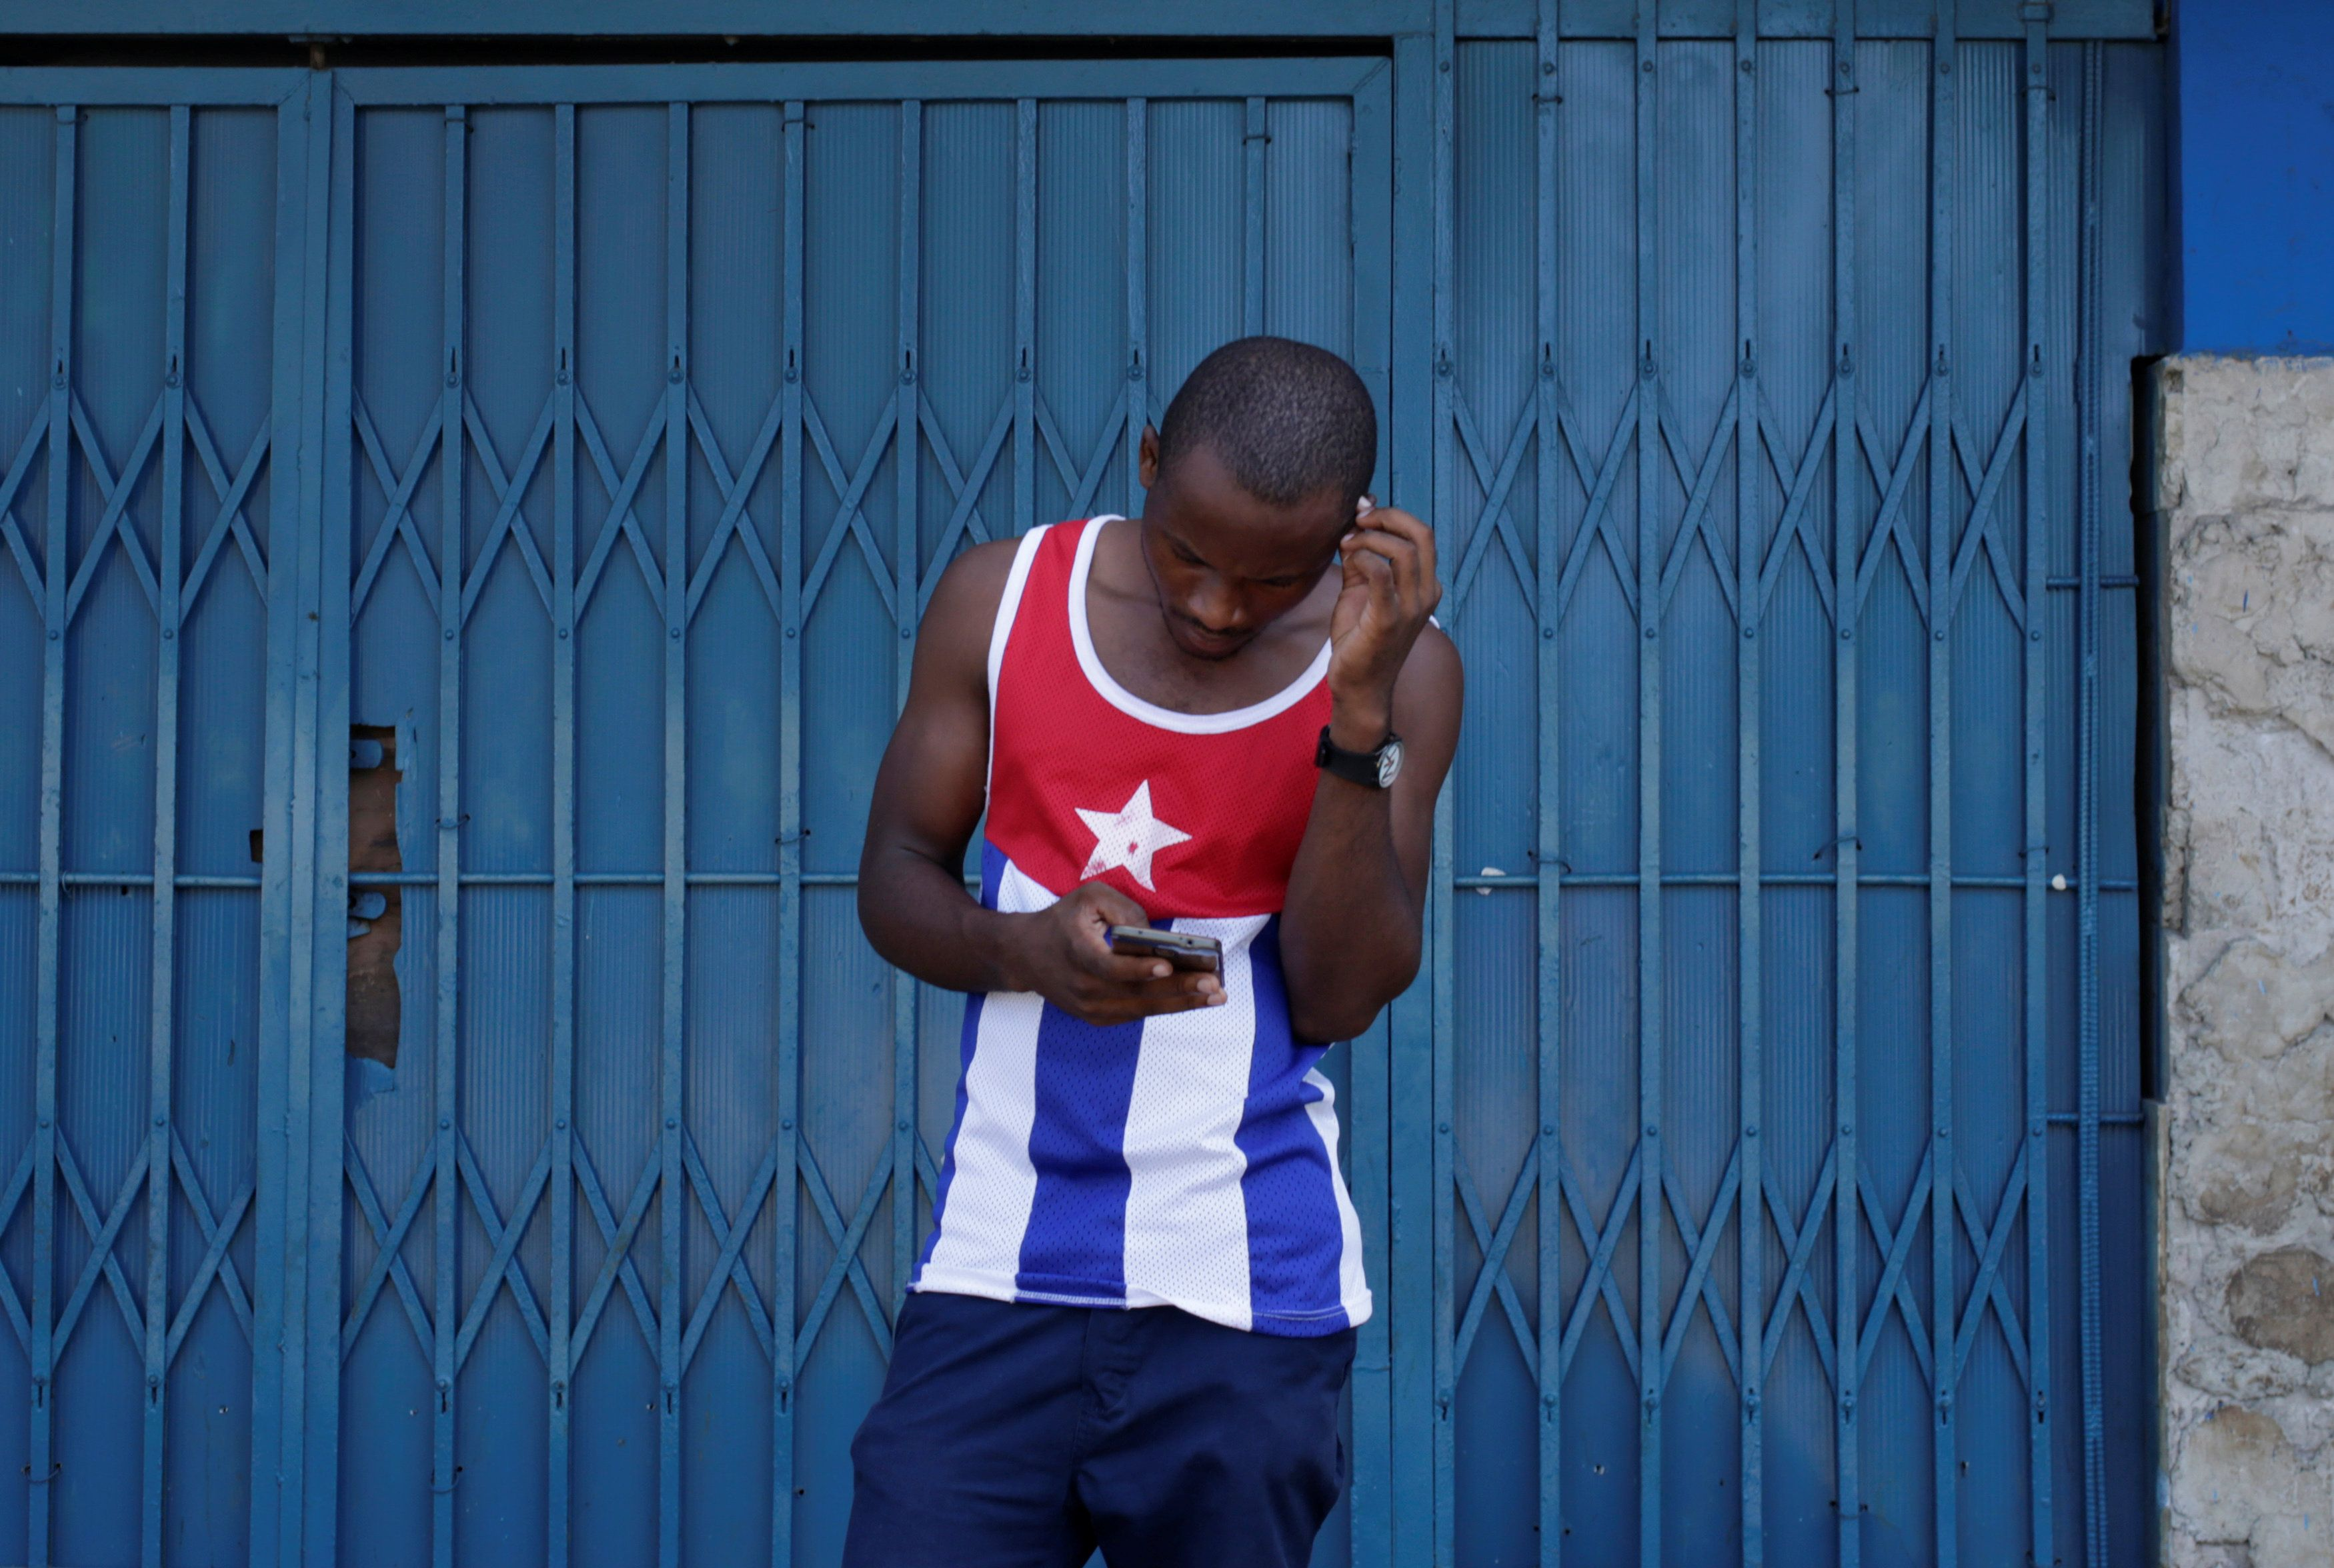 A man uses the internet via public Wi-Fi in Havana, Cuba, September 5, 2016. REUTERS/Enrique de la Osa     TPX IMAGES OF THE DAY